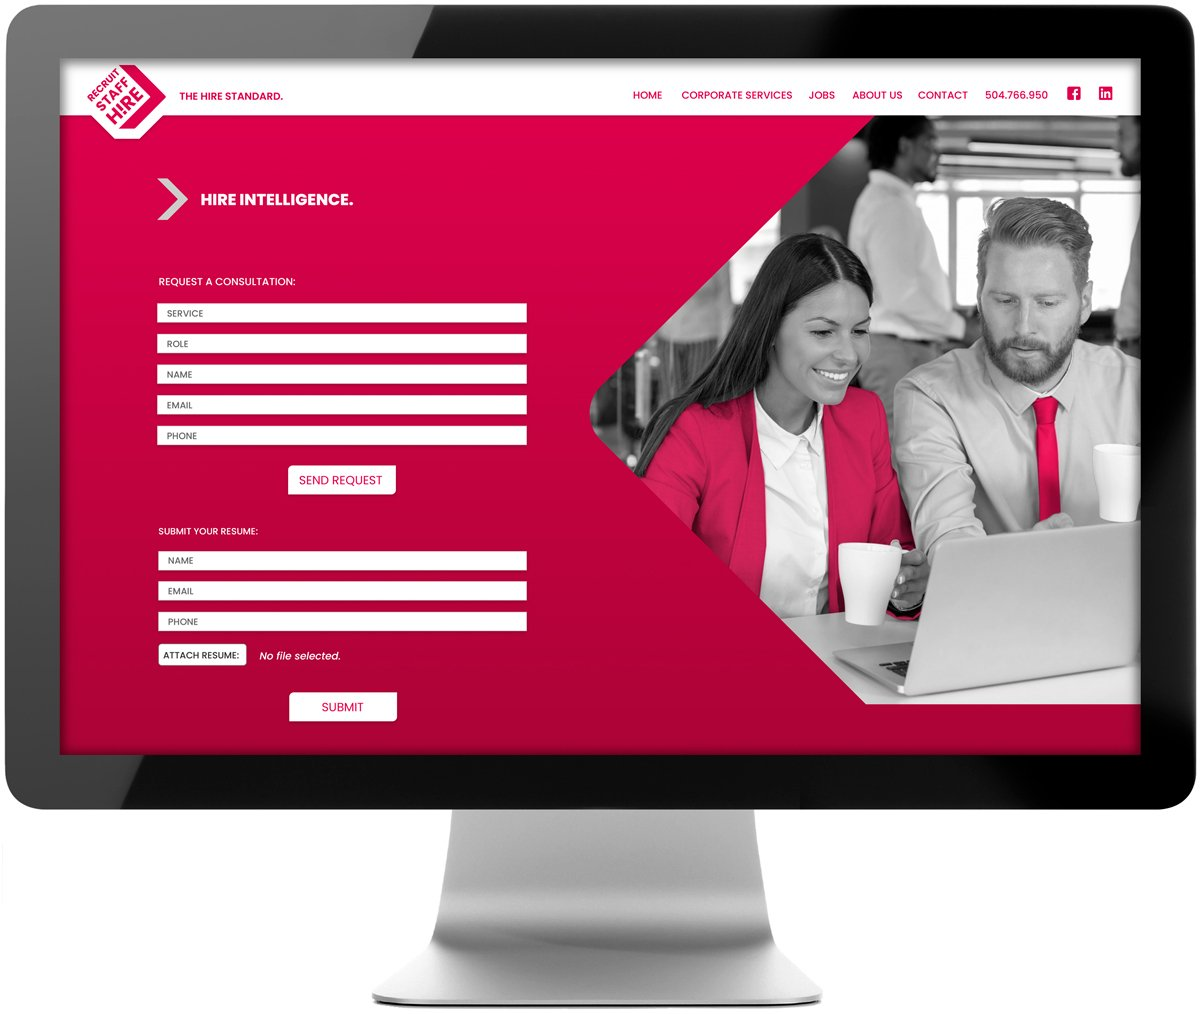 Responsive website for Recruit Staff Hire, designed and developed by Cerberus Agency.